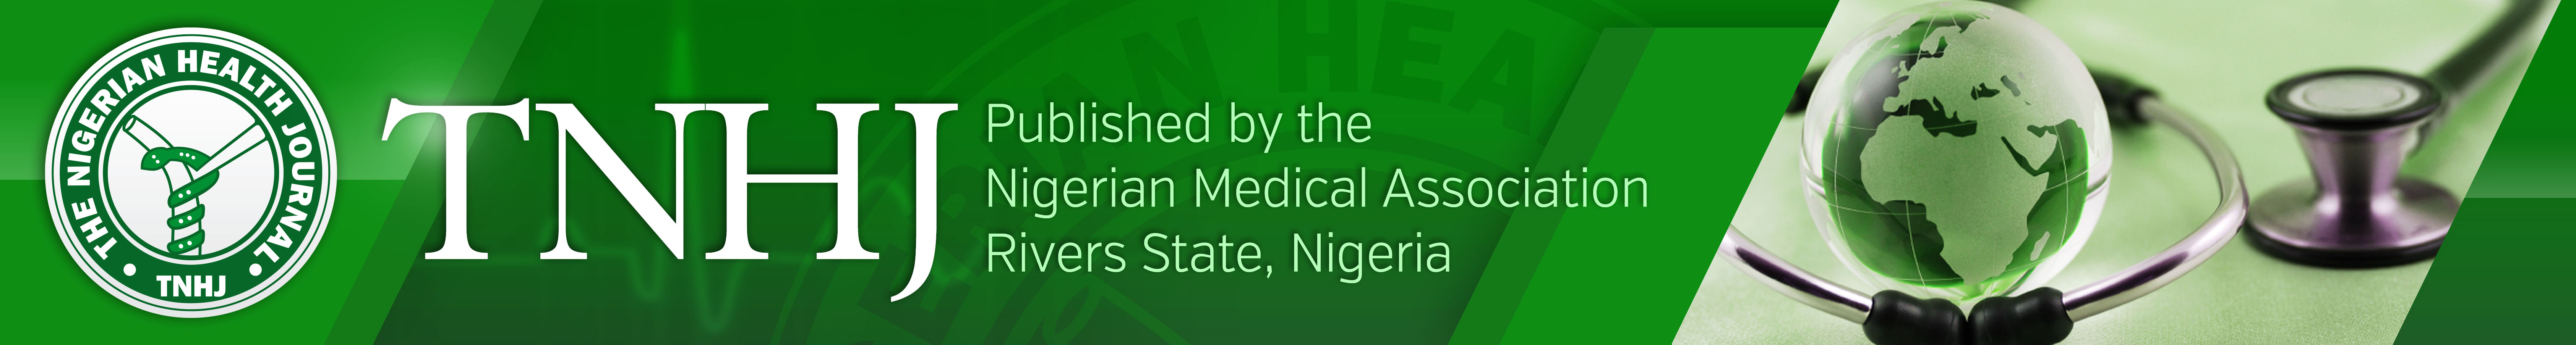 The Nigerian Health Journal - ISSN 1597-4292